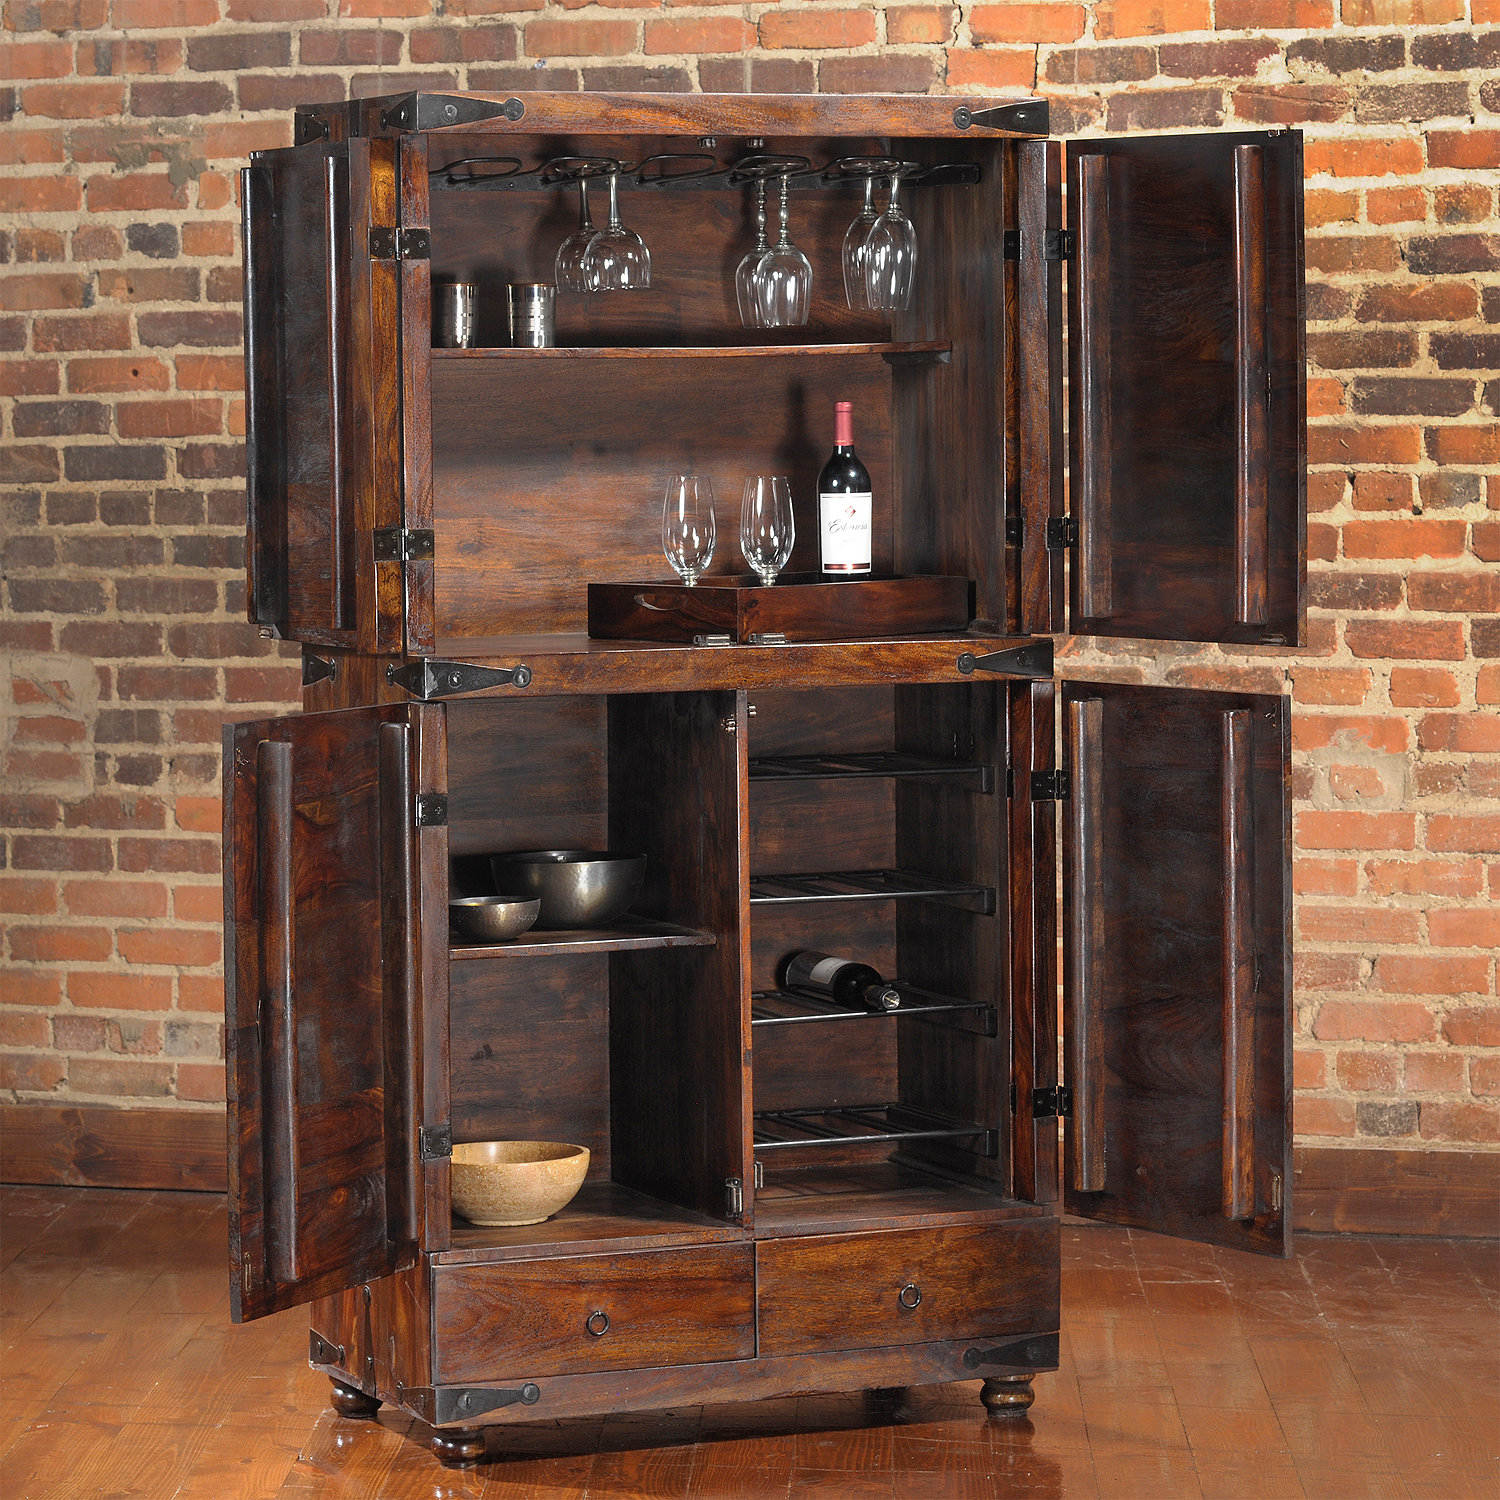 Thakat Bar Cabinet - Wine Enthusiast